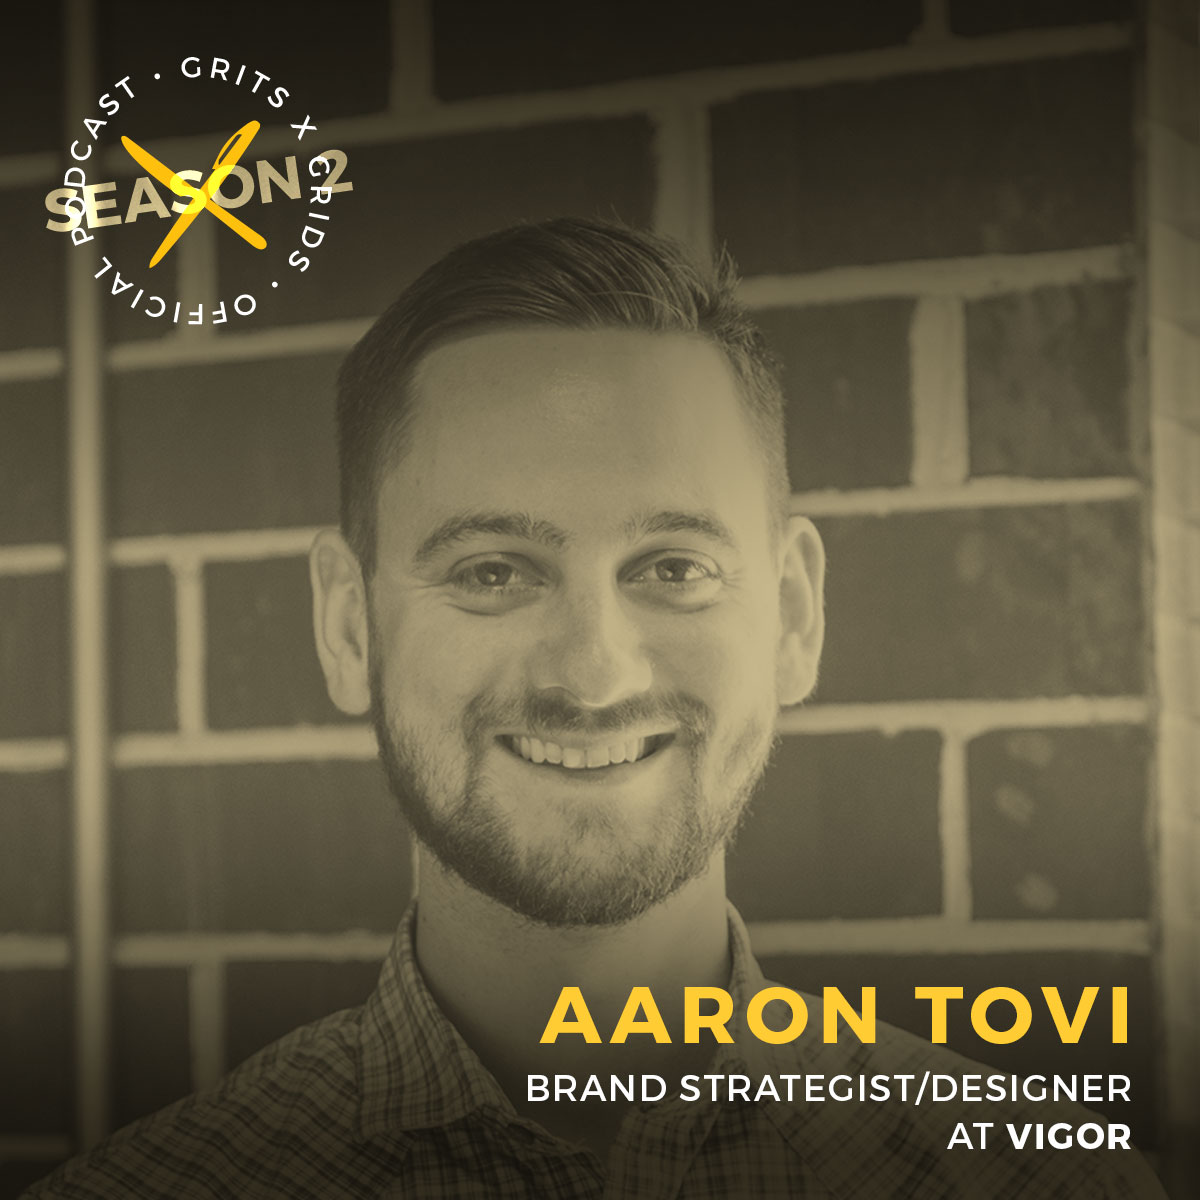 Aaron Tovi on Grits and Grids podcast season 2, brand strategist, designer at Vigor